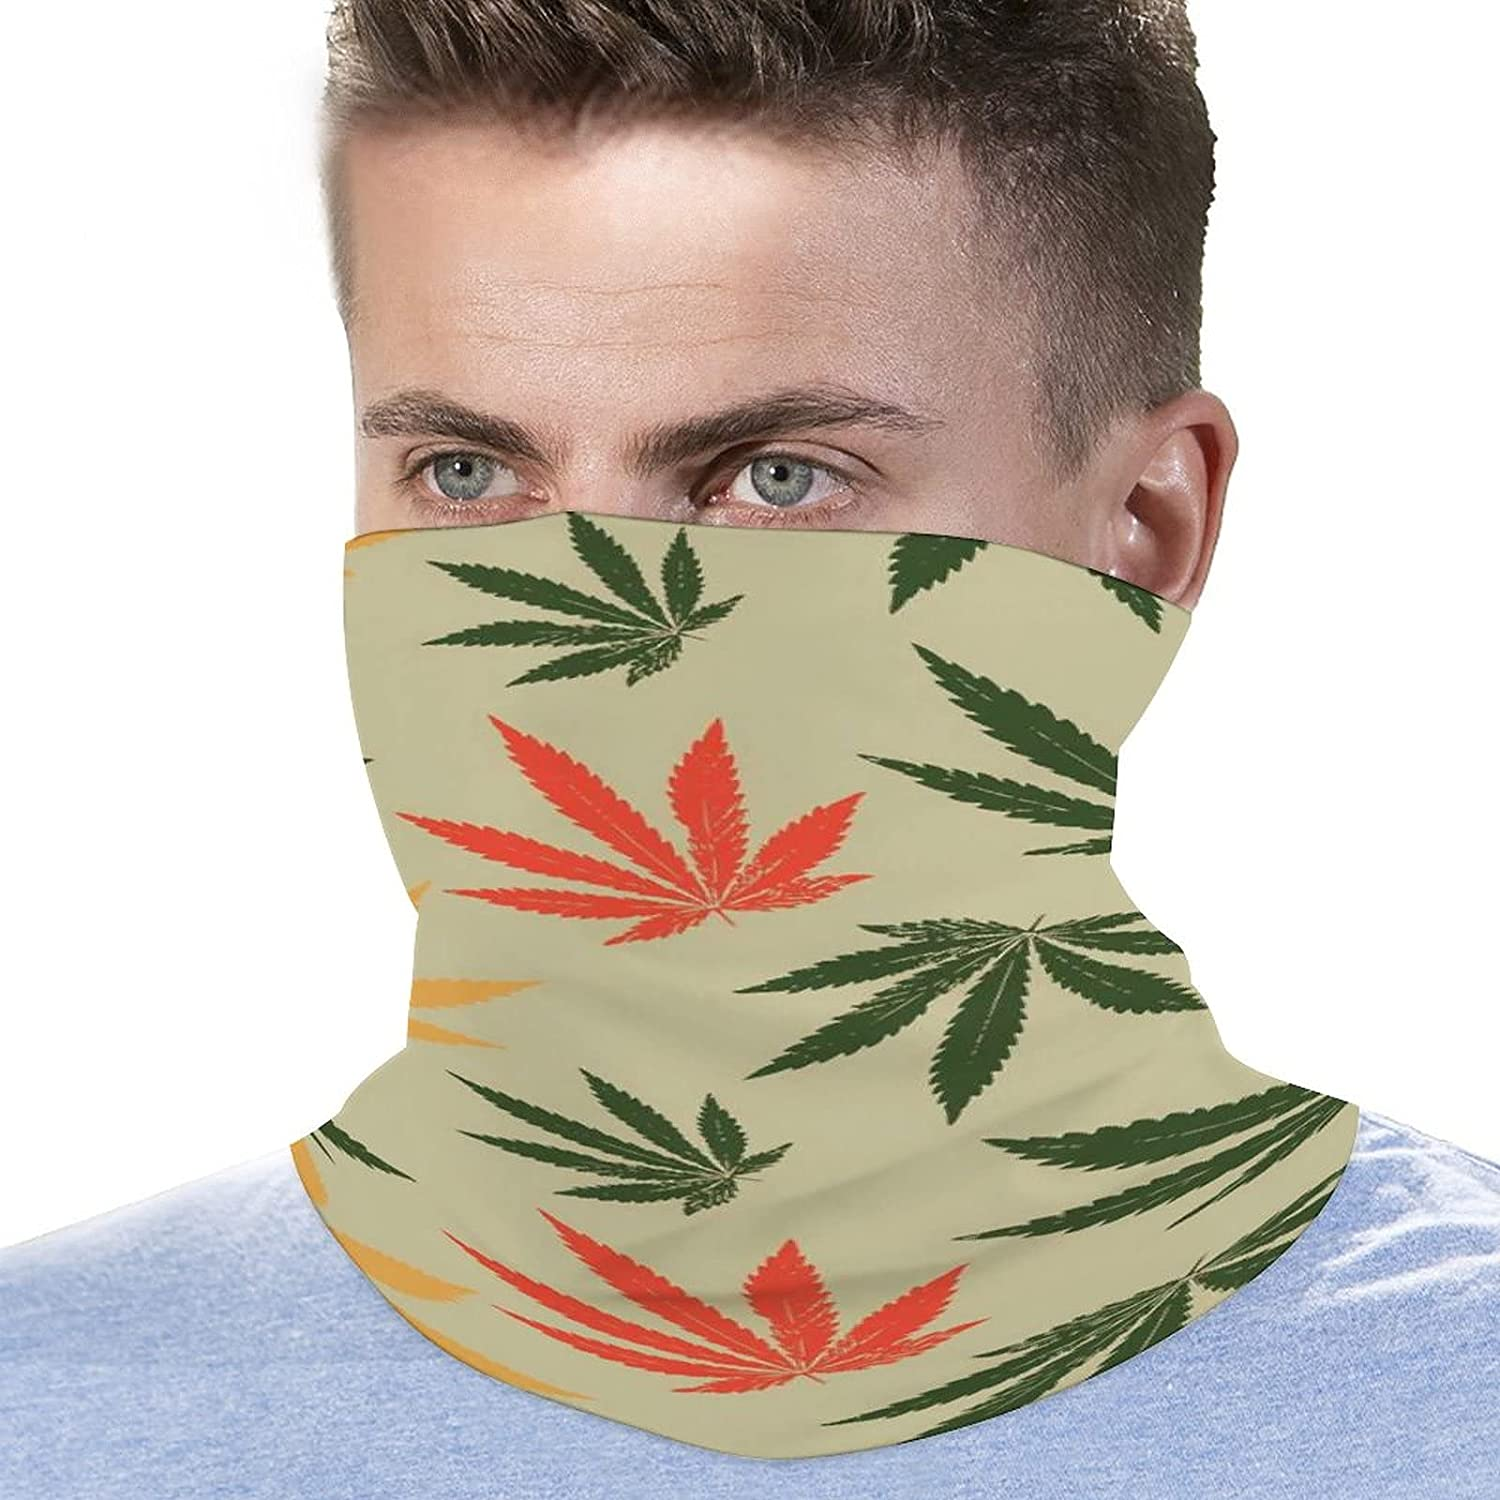 Multifunction Neck Gaiter face Mask for Cooling Summer,Cannabis Leaf Marijuana Leaf Unisex Breathable Bandana Seamless Balaclavas for Dust Outdoor Fishing and Sports Face Cover Scarf